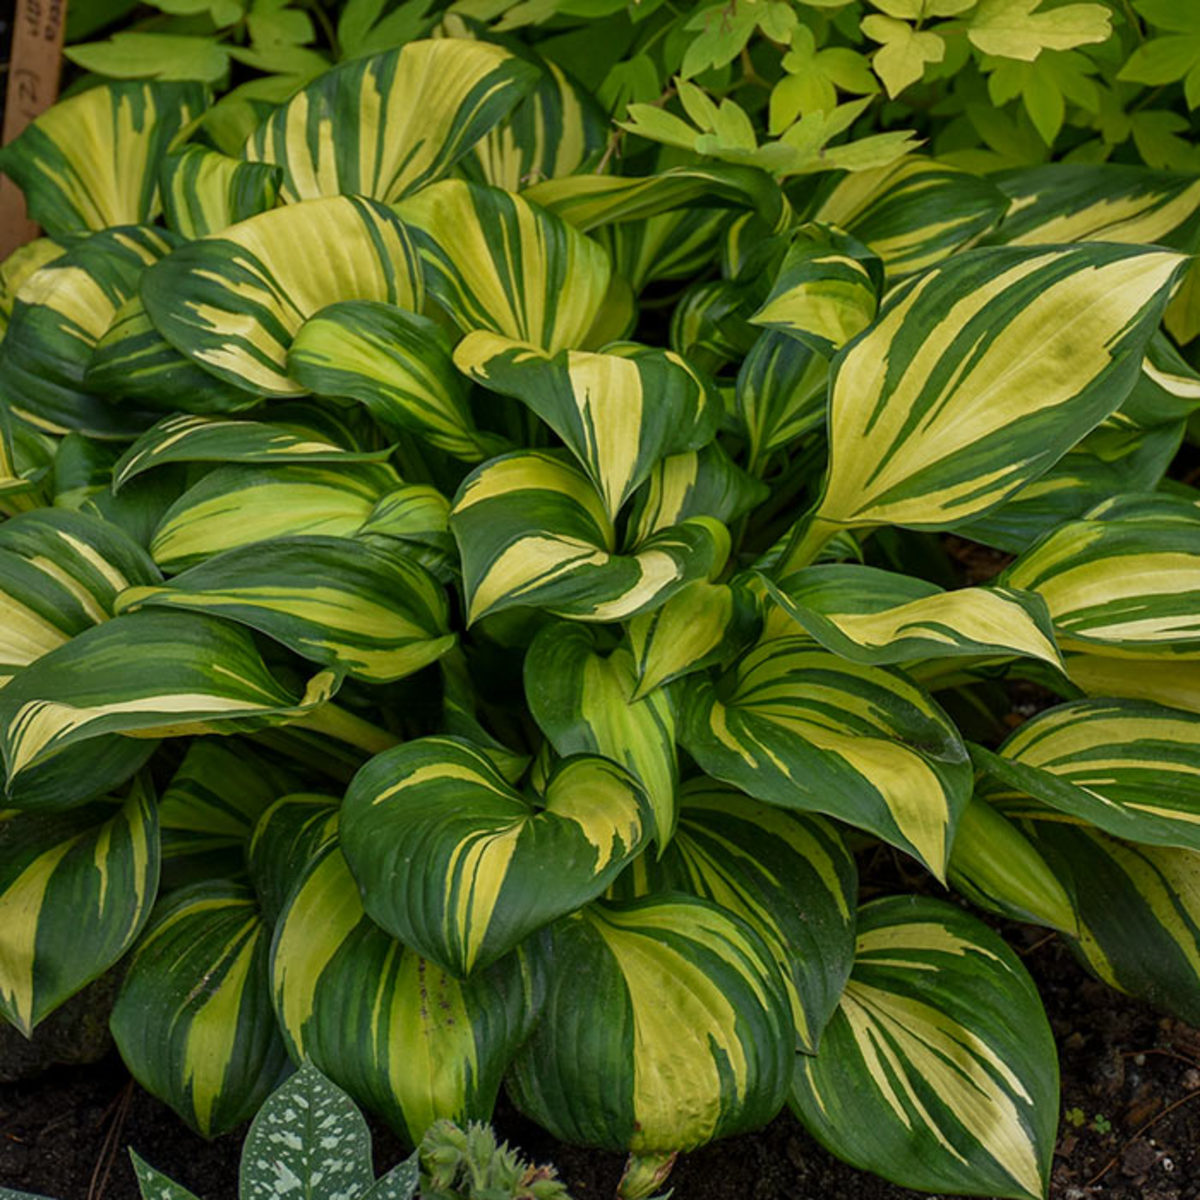 'Rainbow's End' was named Hosta of the Year for 2021 by the American Hosta Growers Association.